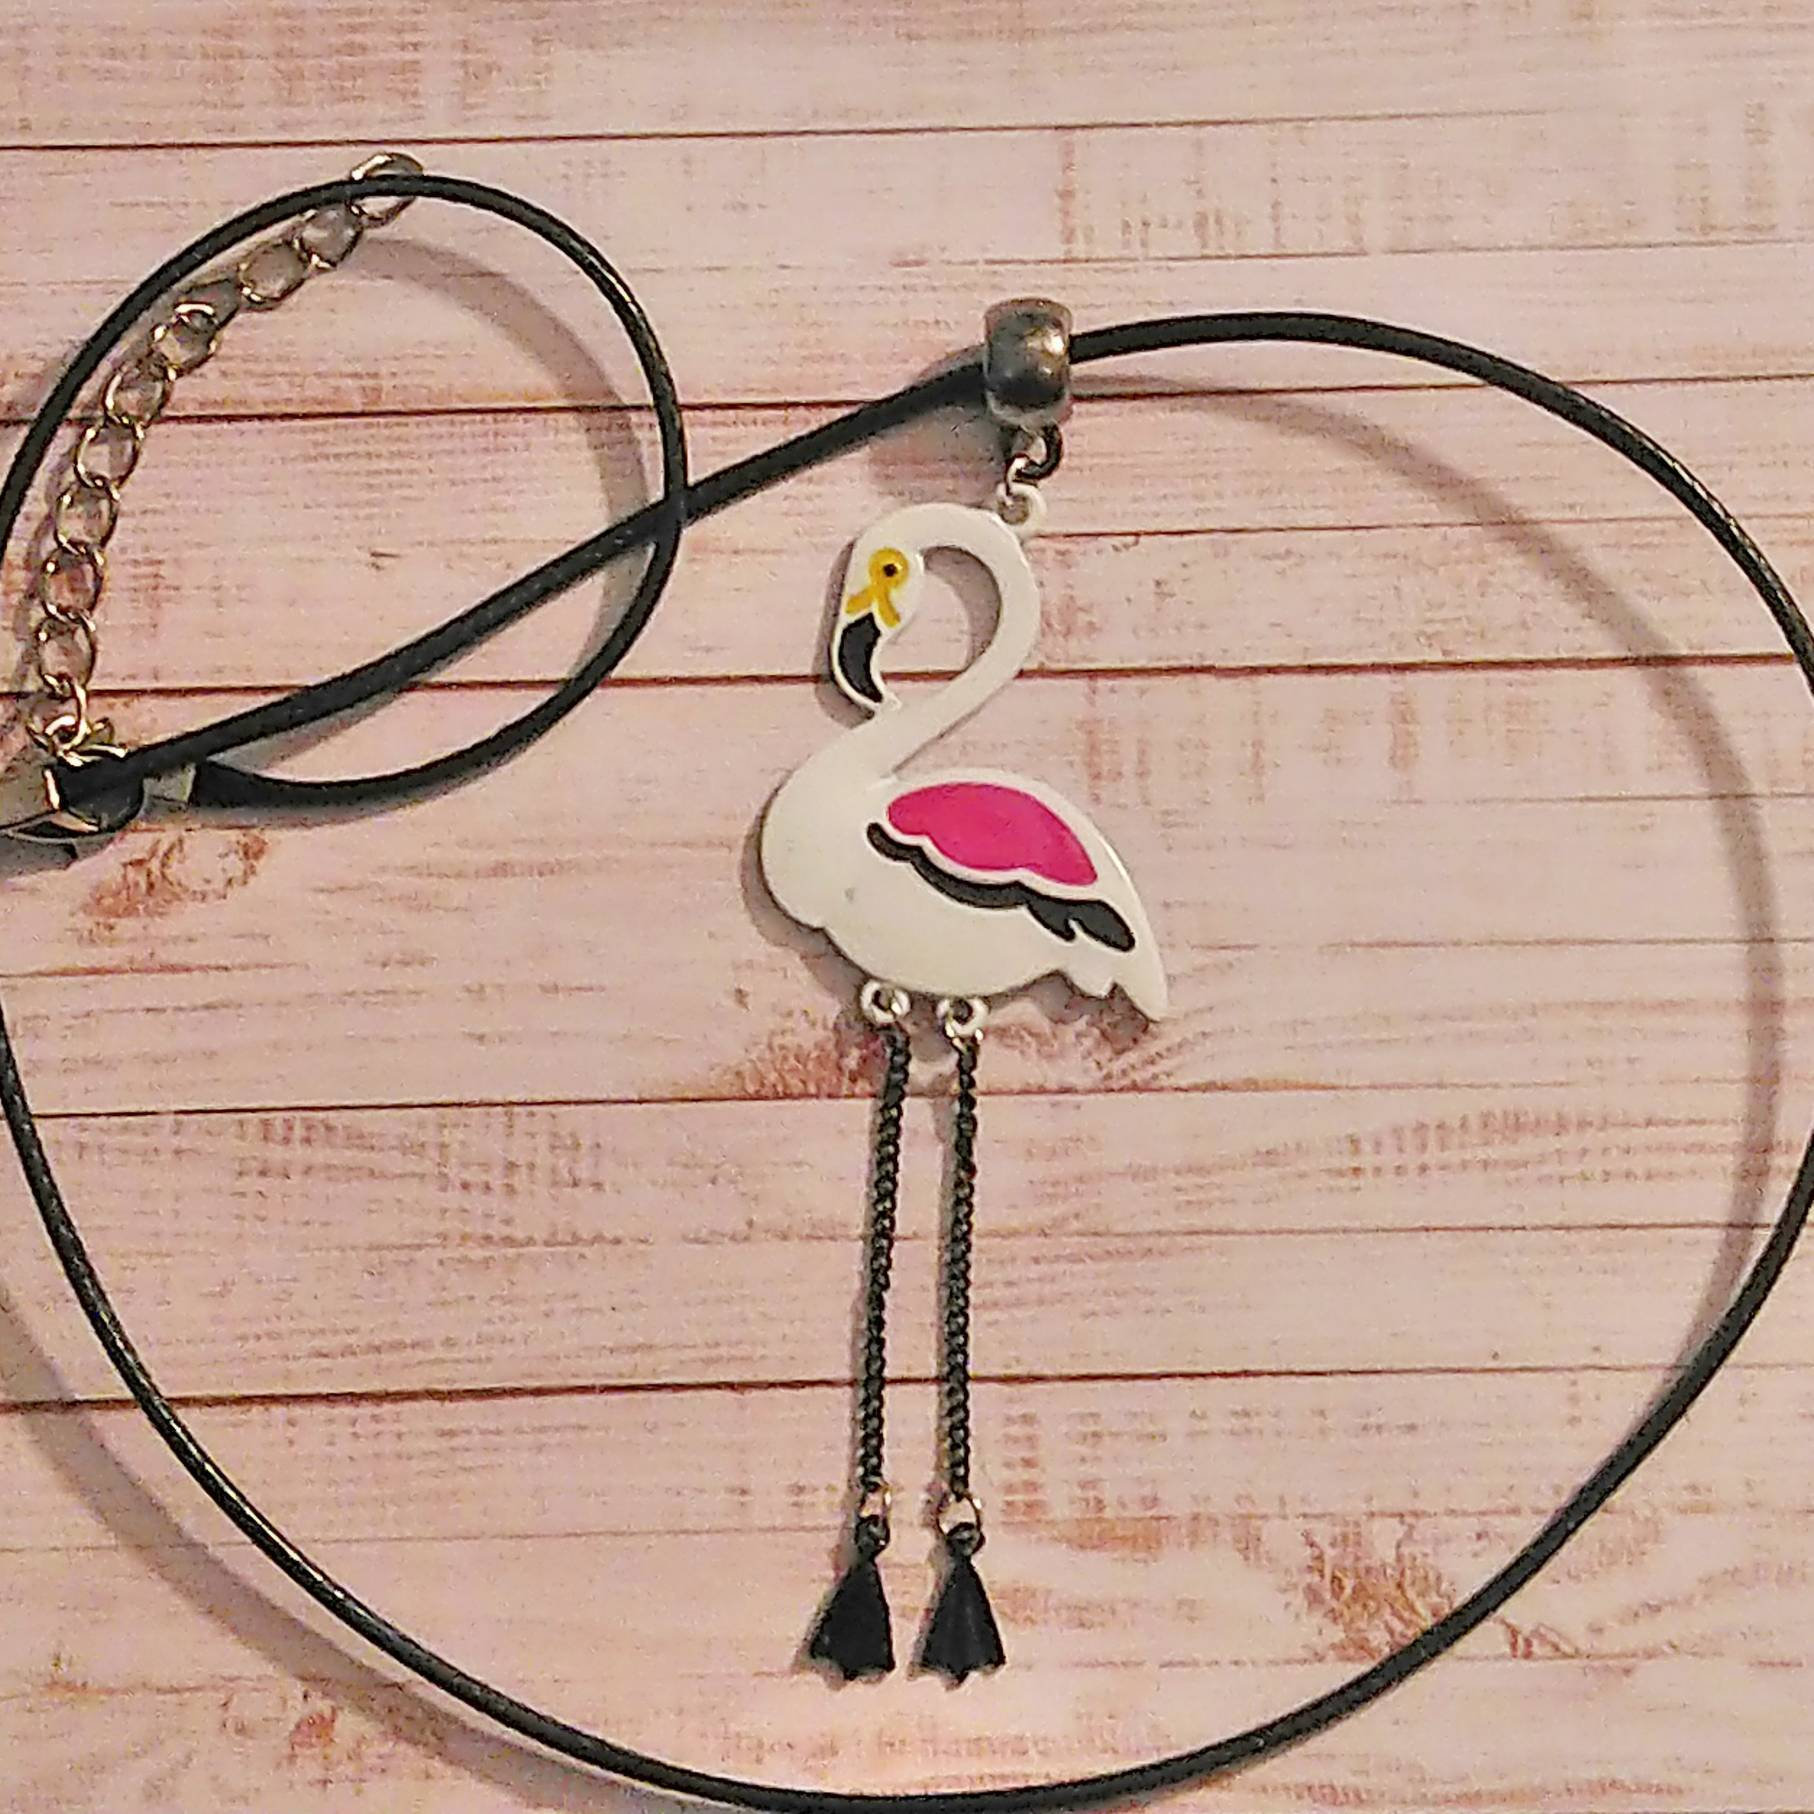 Pink & White Flamingo Pendant Necklace. Moveable Dangly Legs. Waxed Black Cord. Beautiful  Boho Earrings.  Ideal Gift for Women. 00155